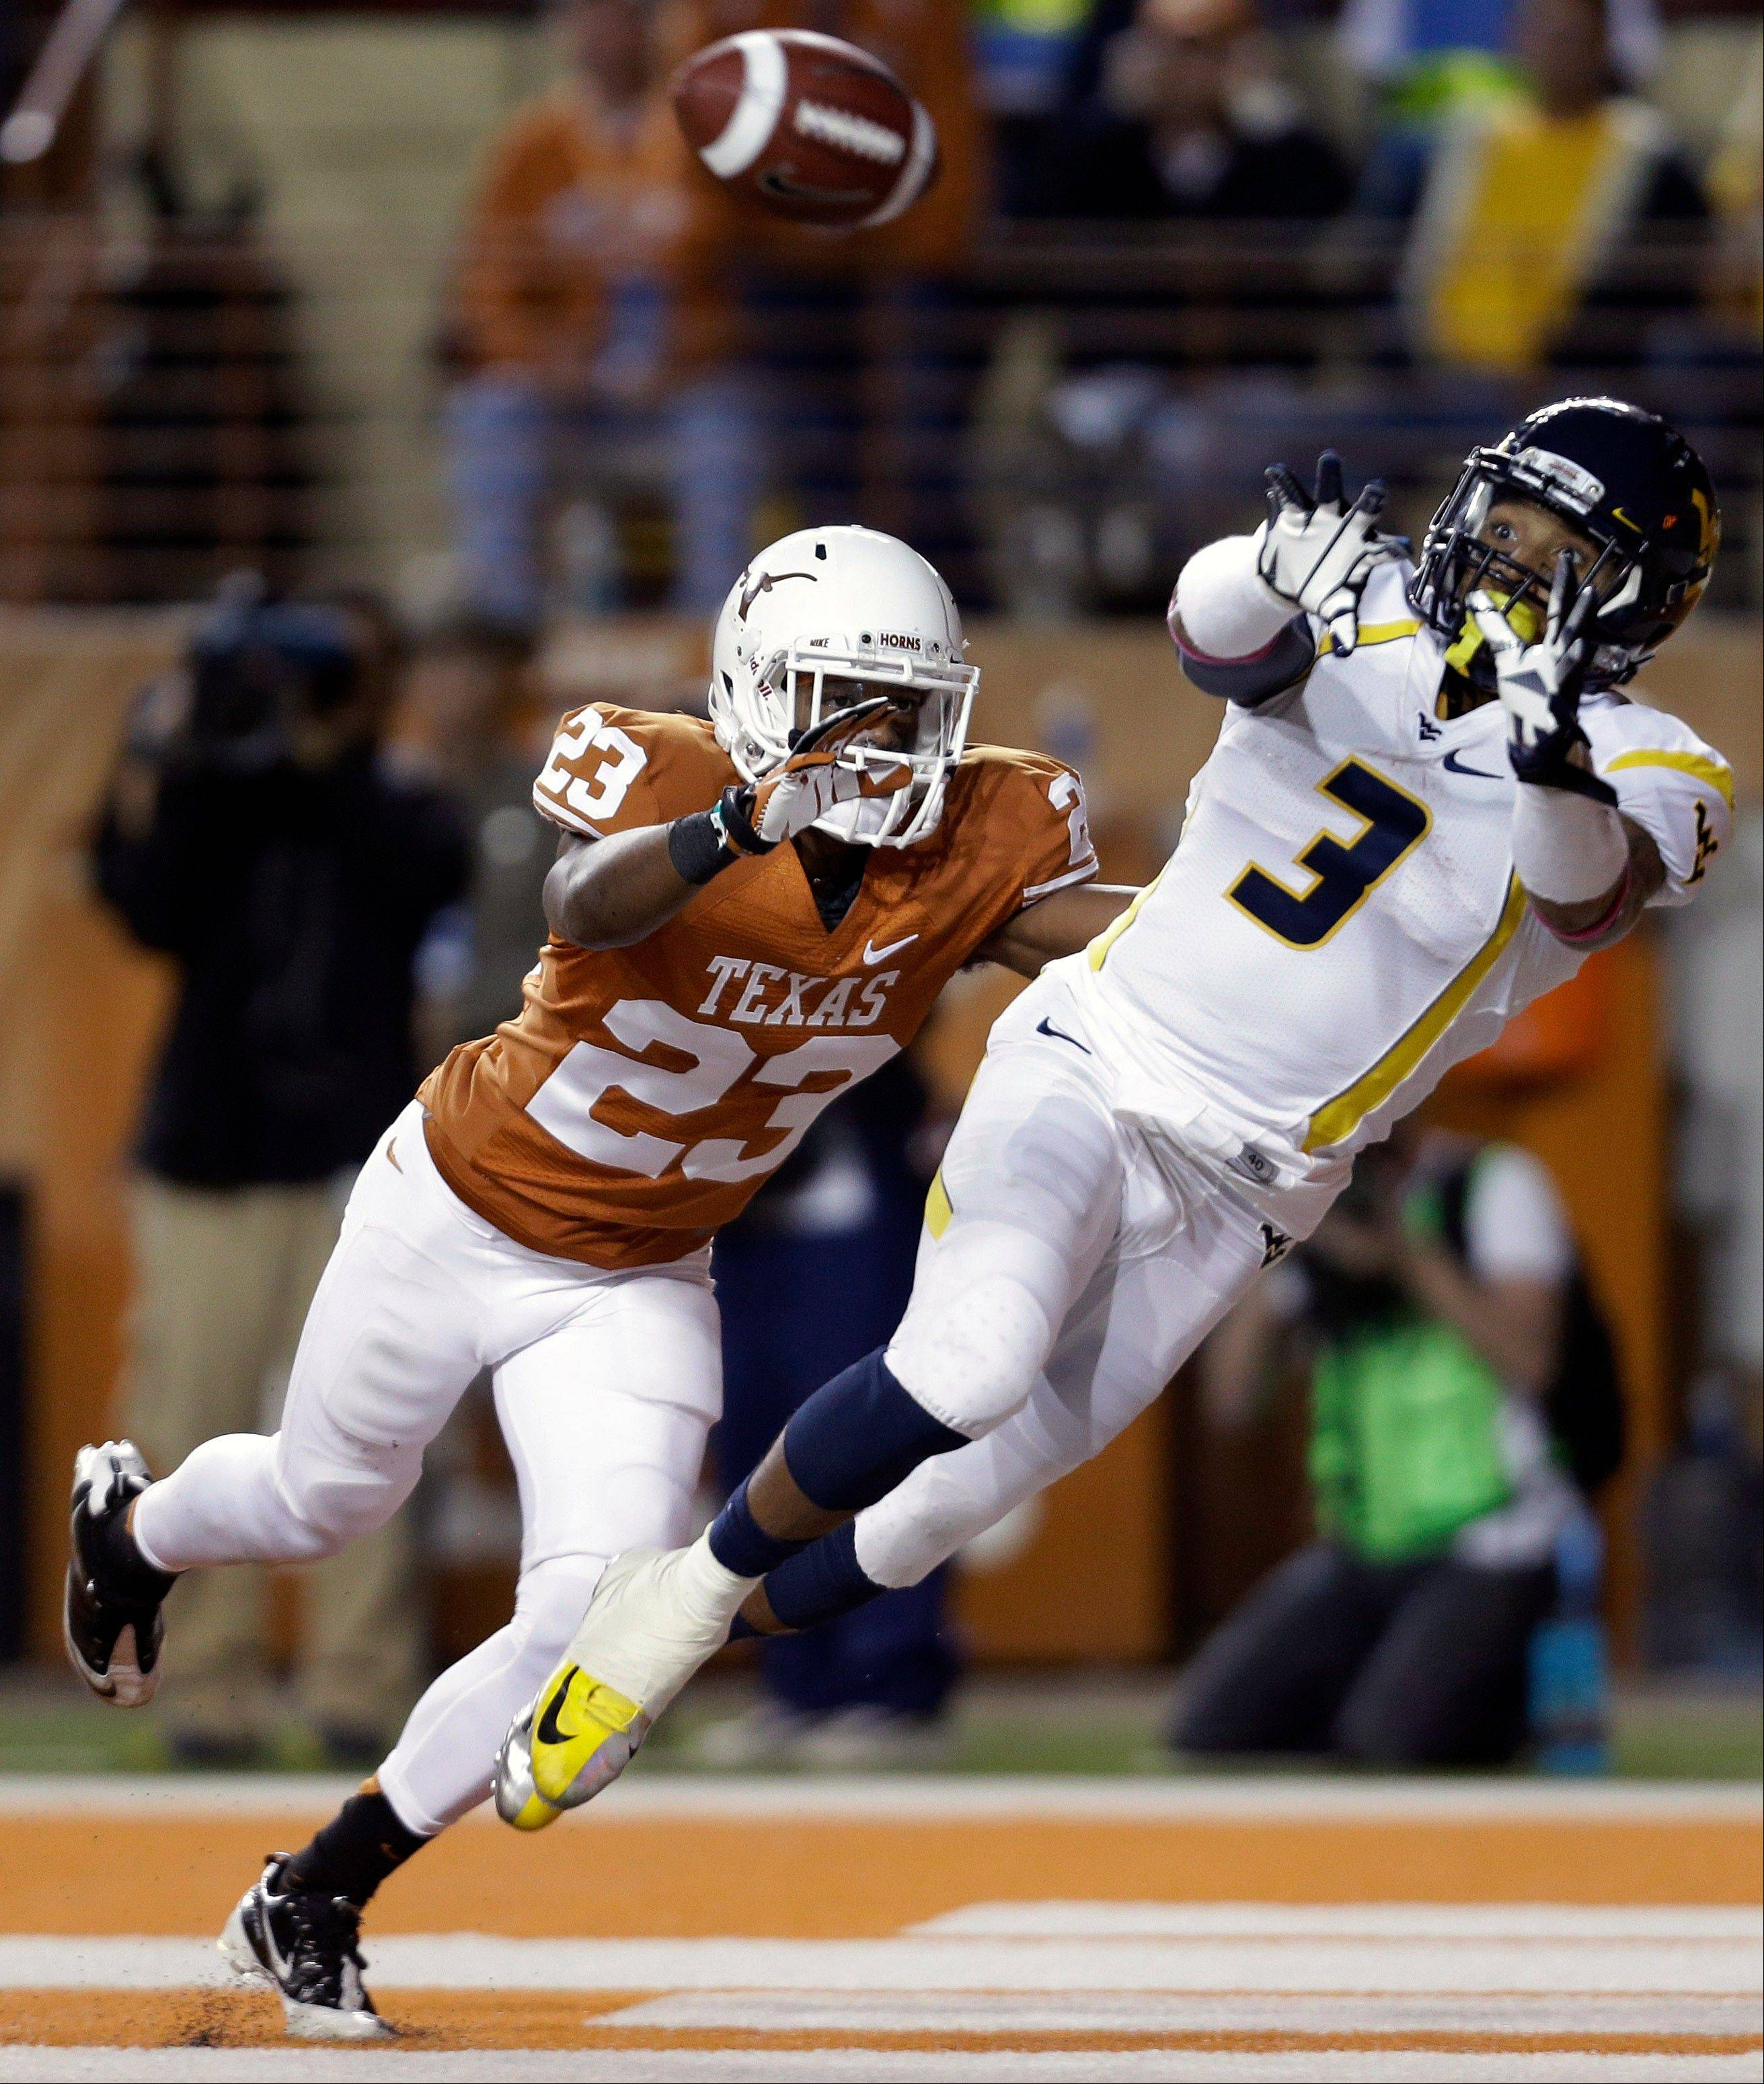 West Virginia's Stedman Bailey leaps for a touchdown pass as Texas' Carrington Byndom defends during the third quarter Saturday in Austin, Texas.